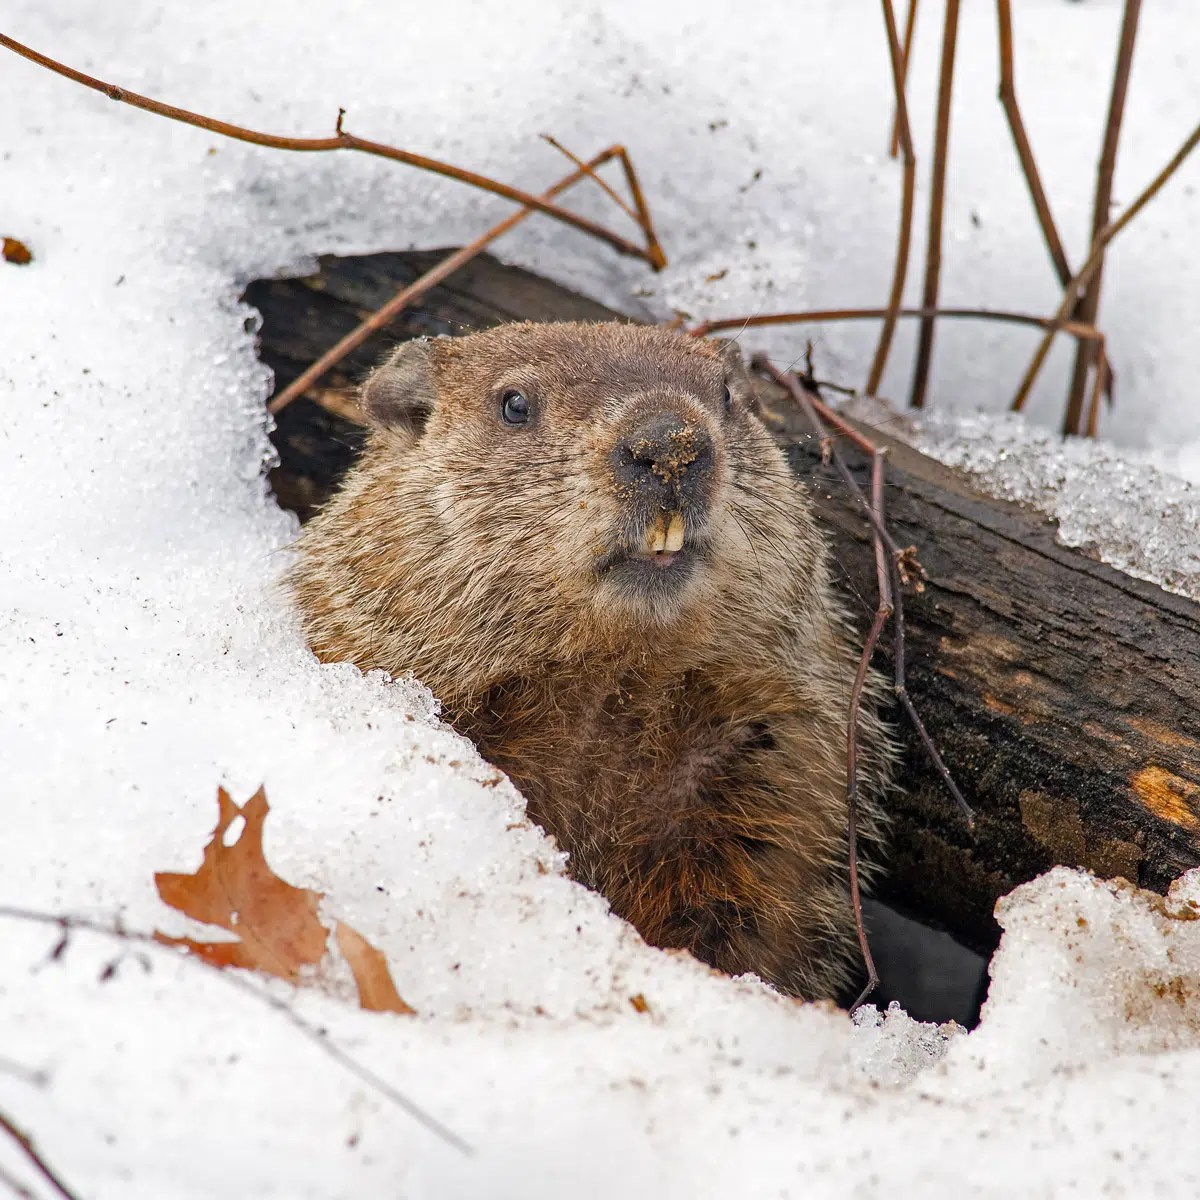 hight resolution of GROUNDHOG DAY - February 2